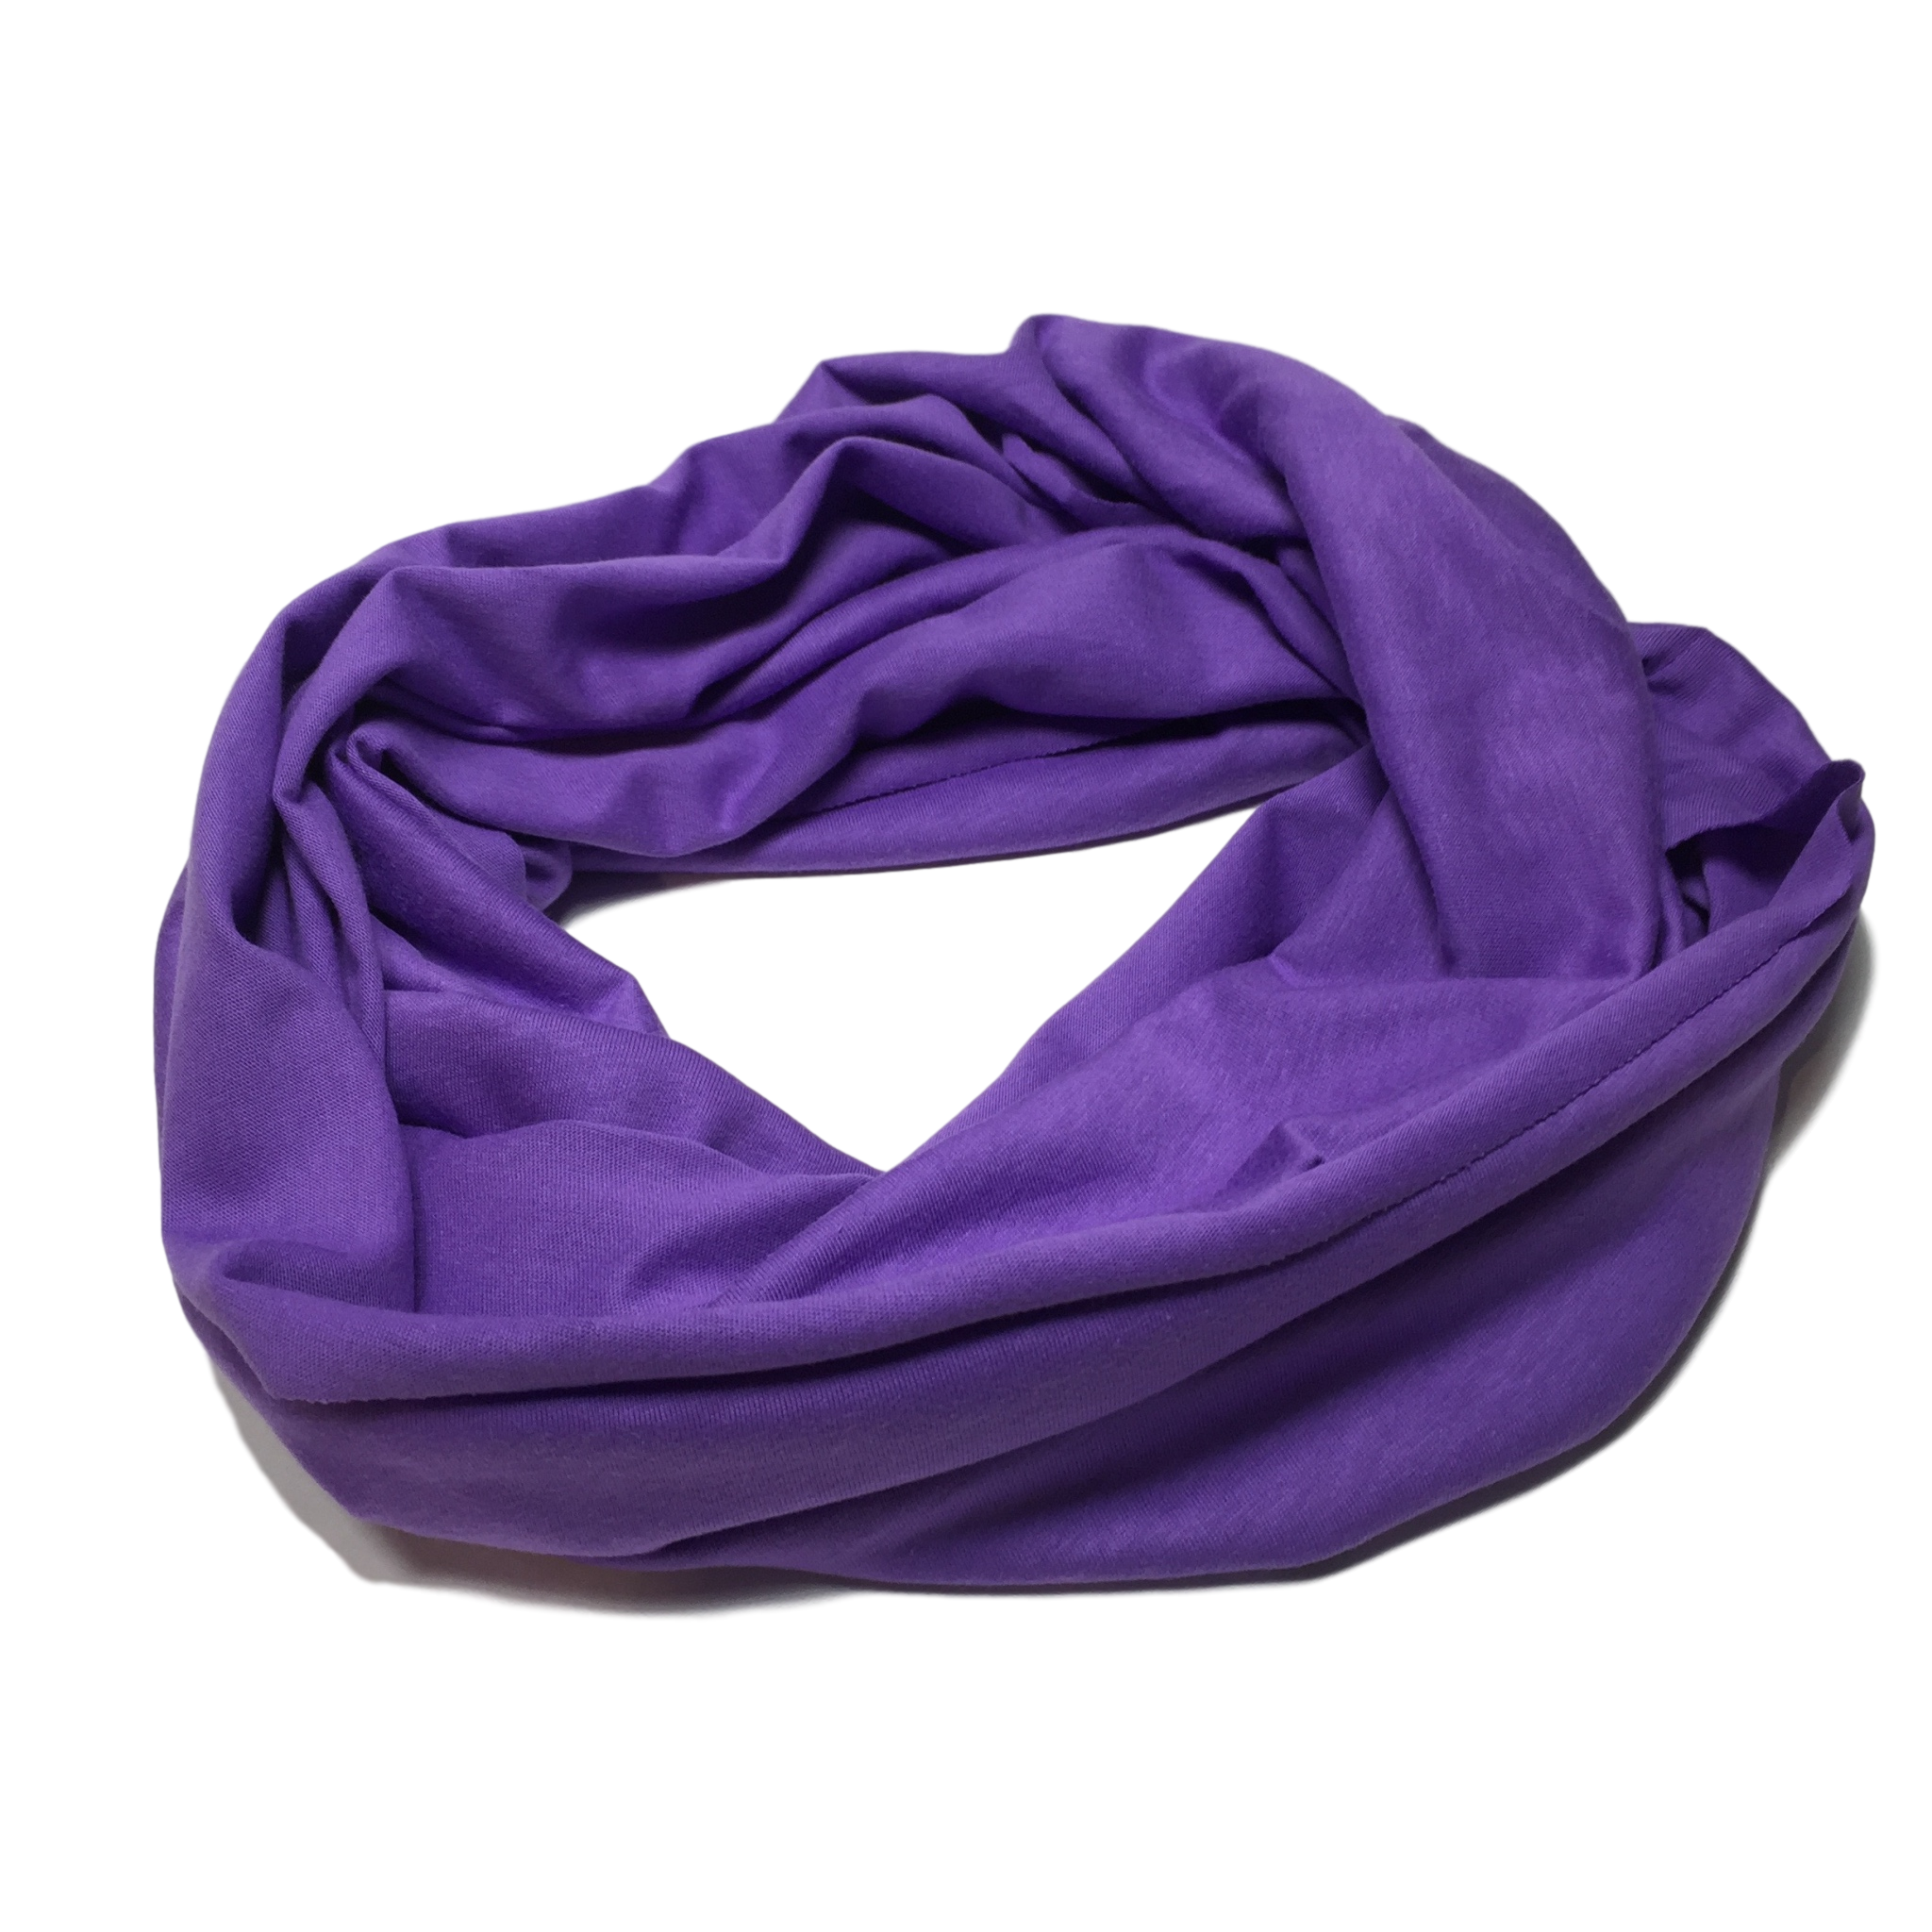 Infinity scarf png. Purple